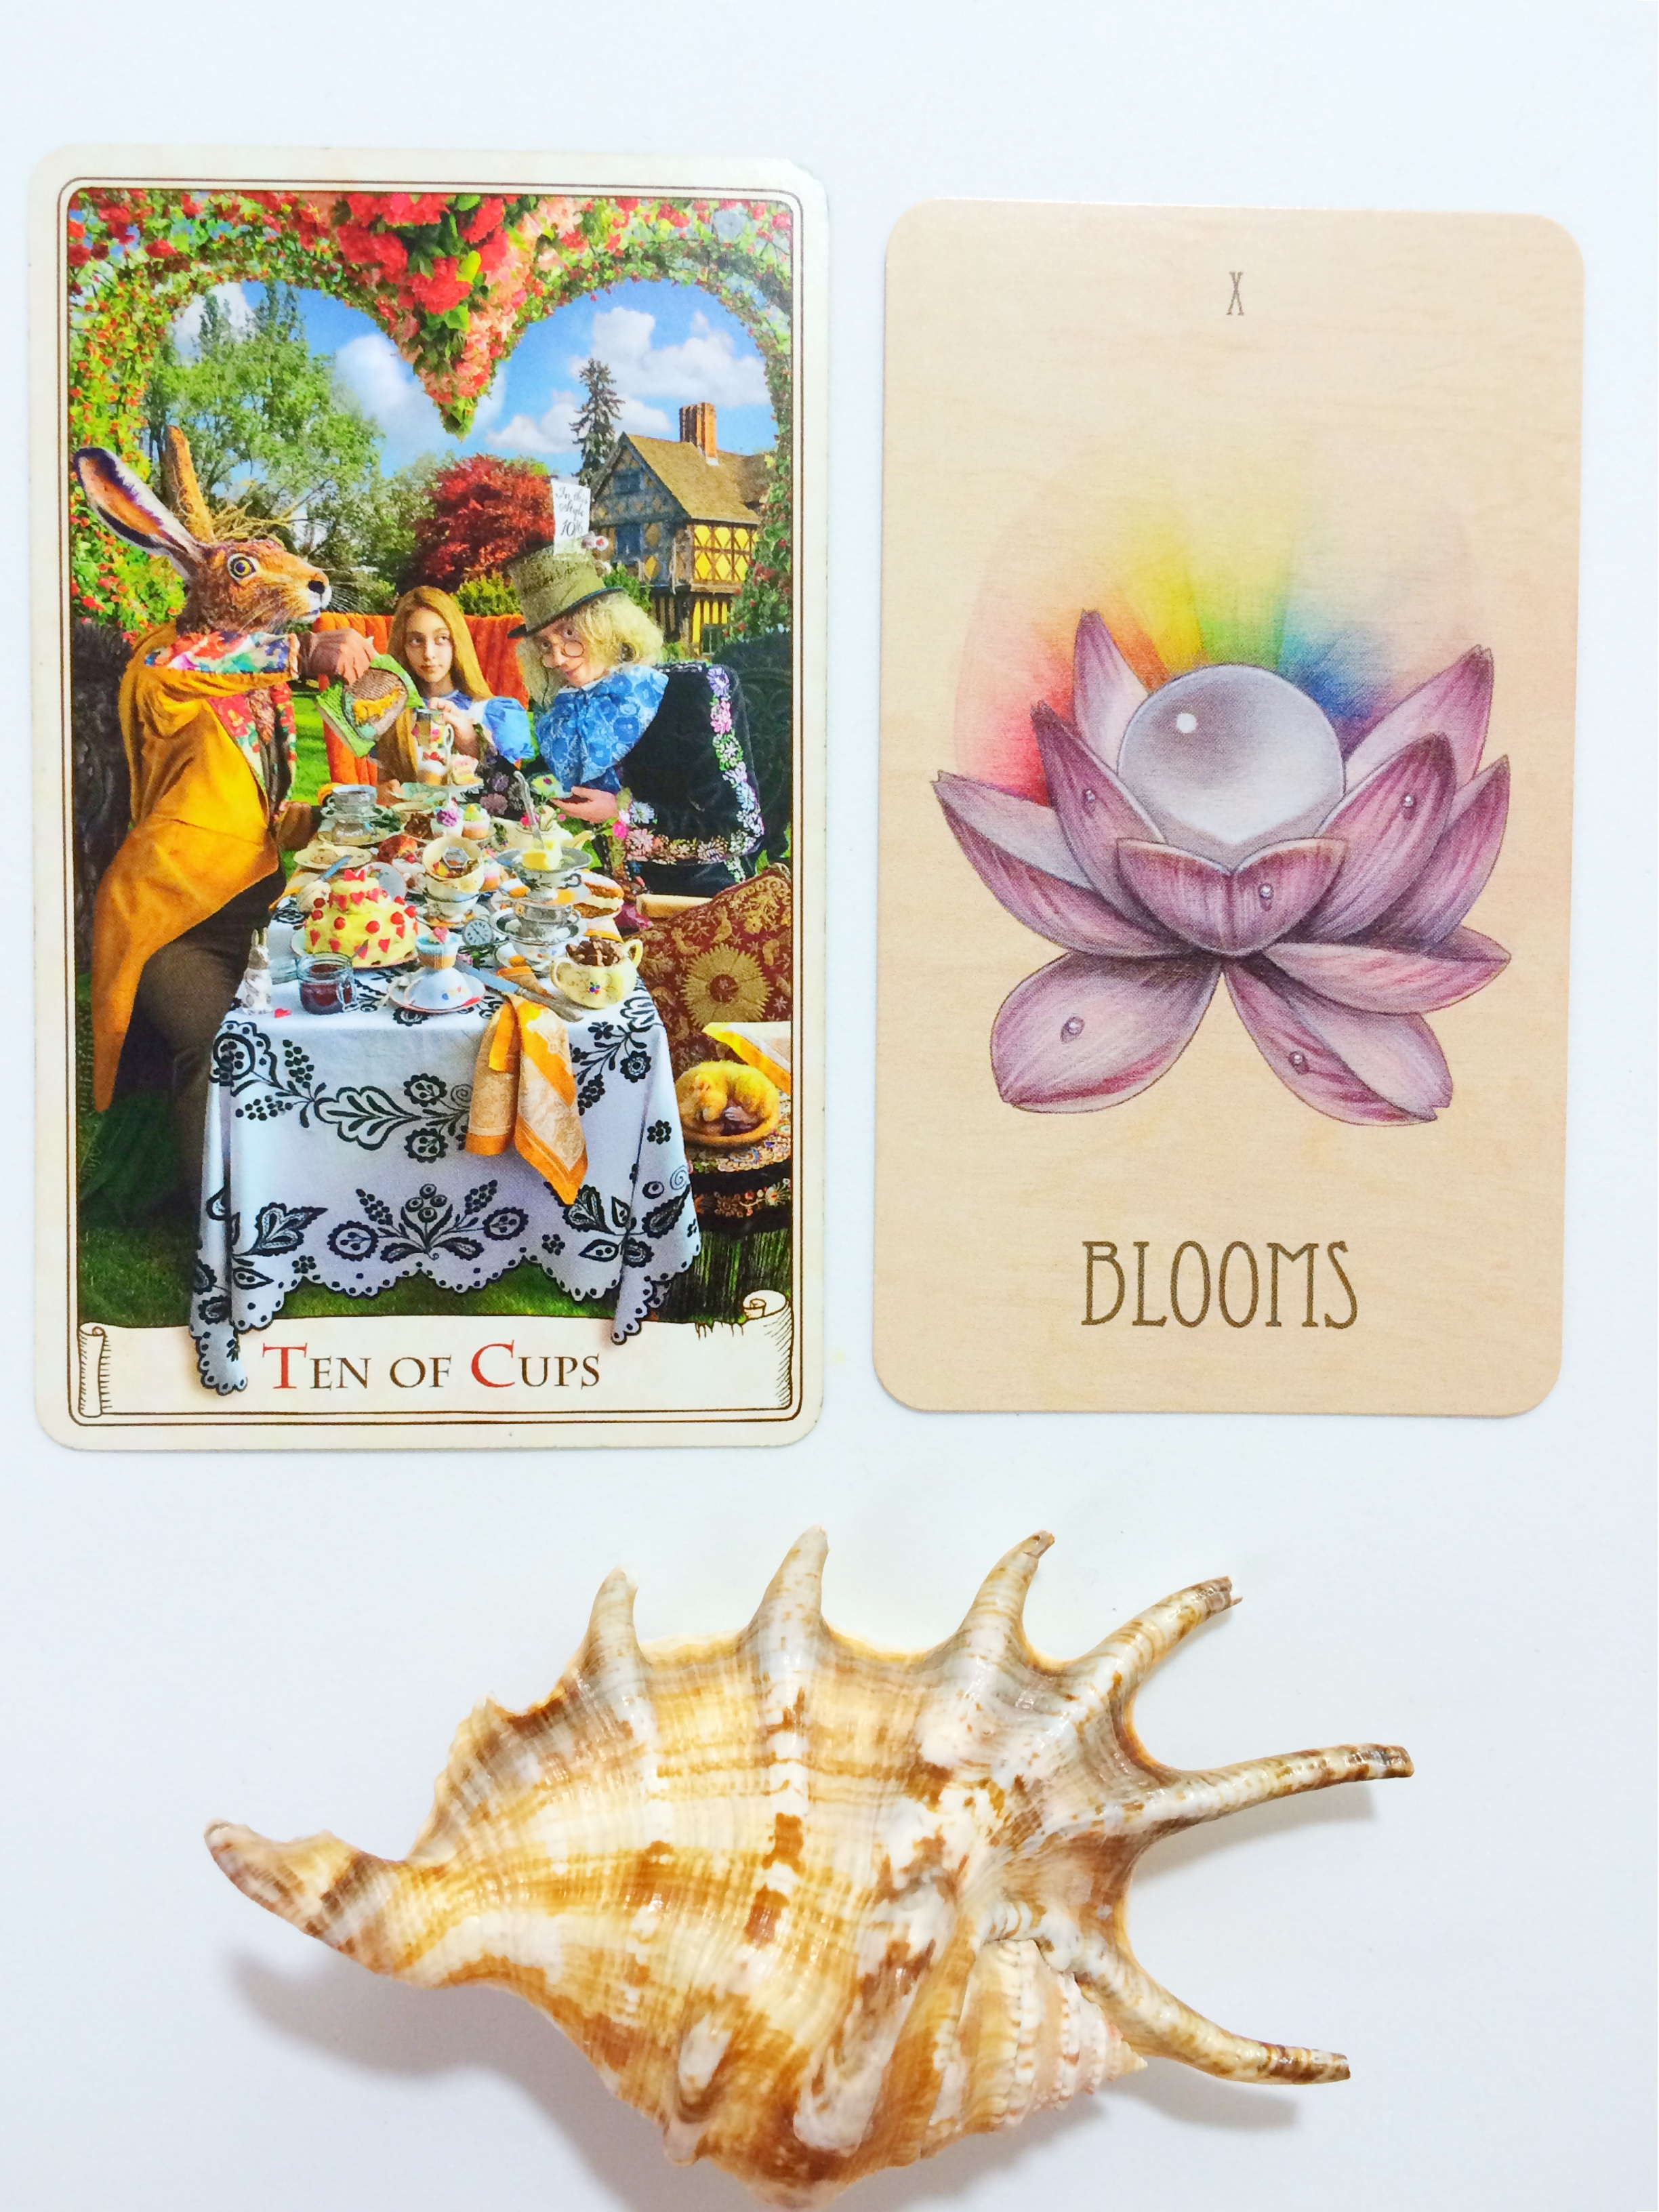 The 10 of Cups from the Alice Tarot (baba studios) which is detailed and the 10 of Cups from The Wooden Tarot which is rather minimal.